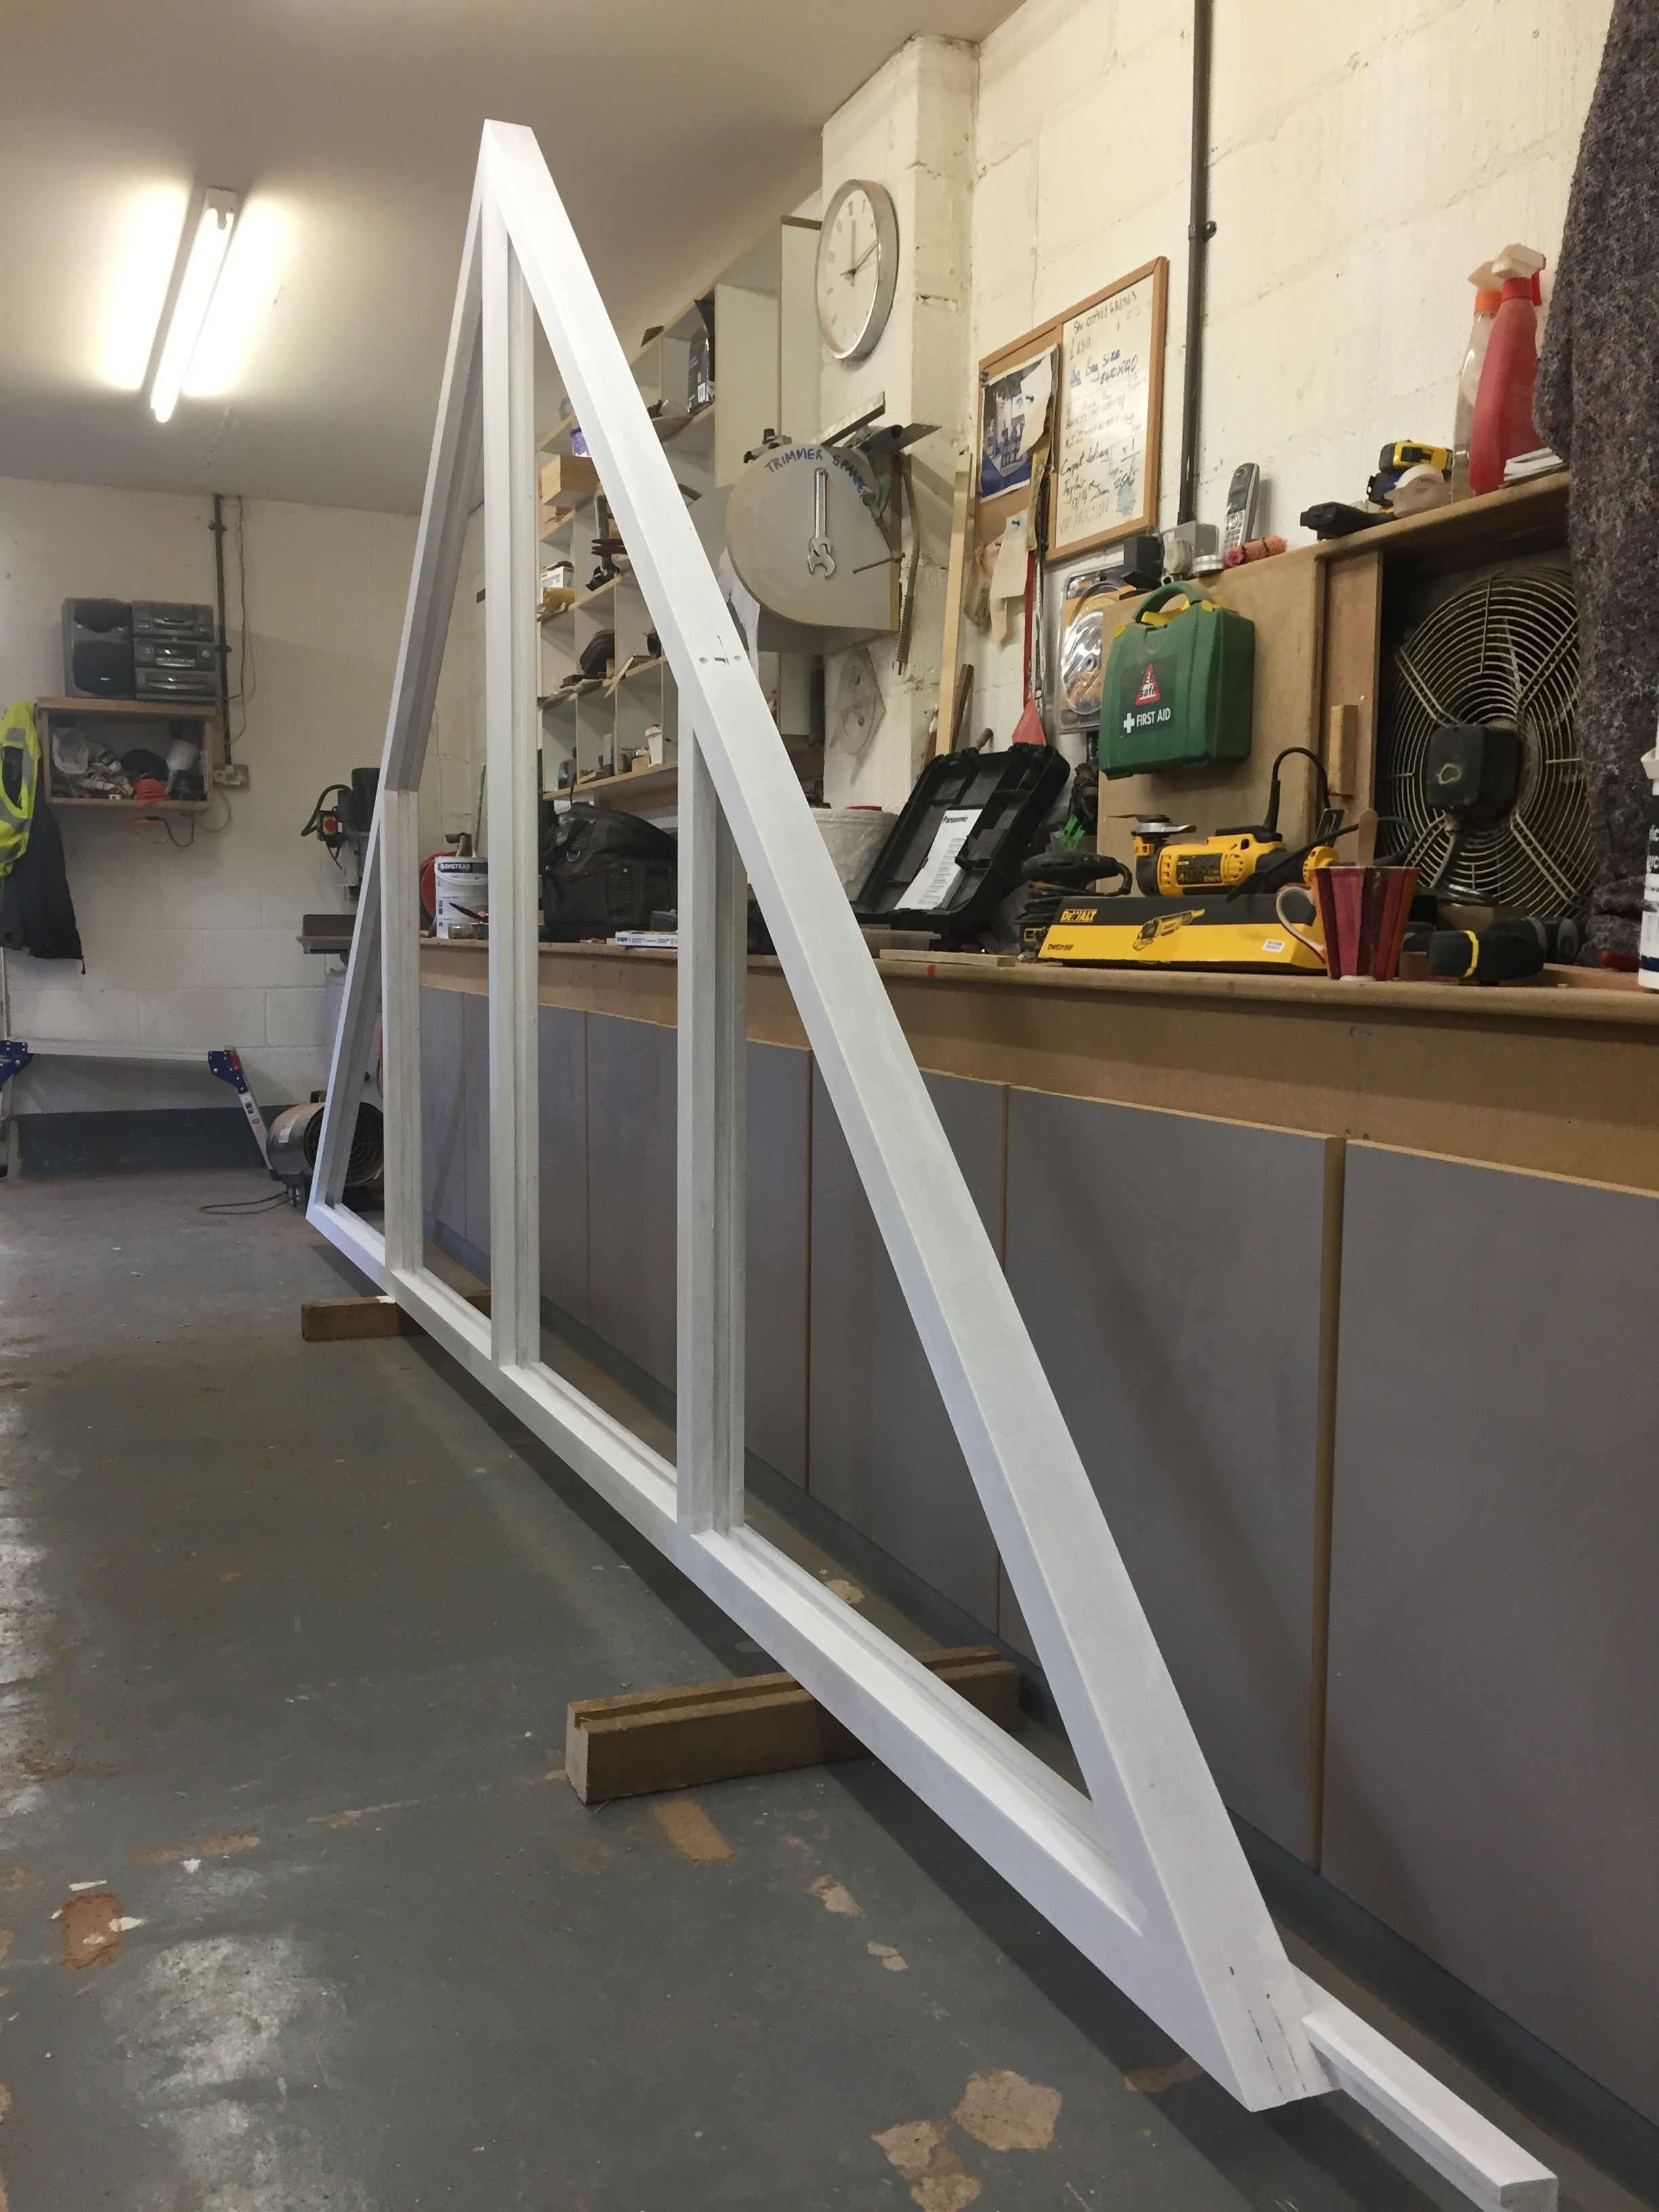 Gable end window ideas  purpose made gable end window  joinery  pinterest  joinery